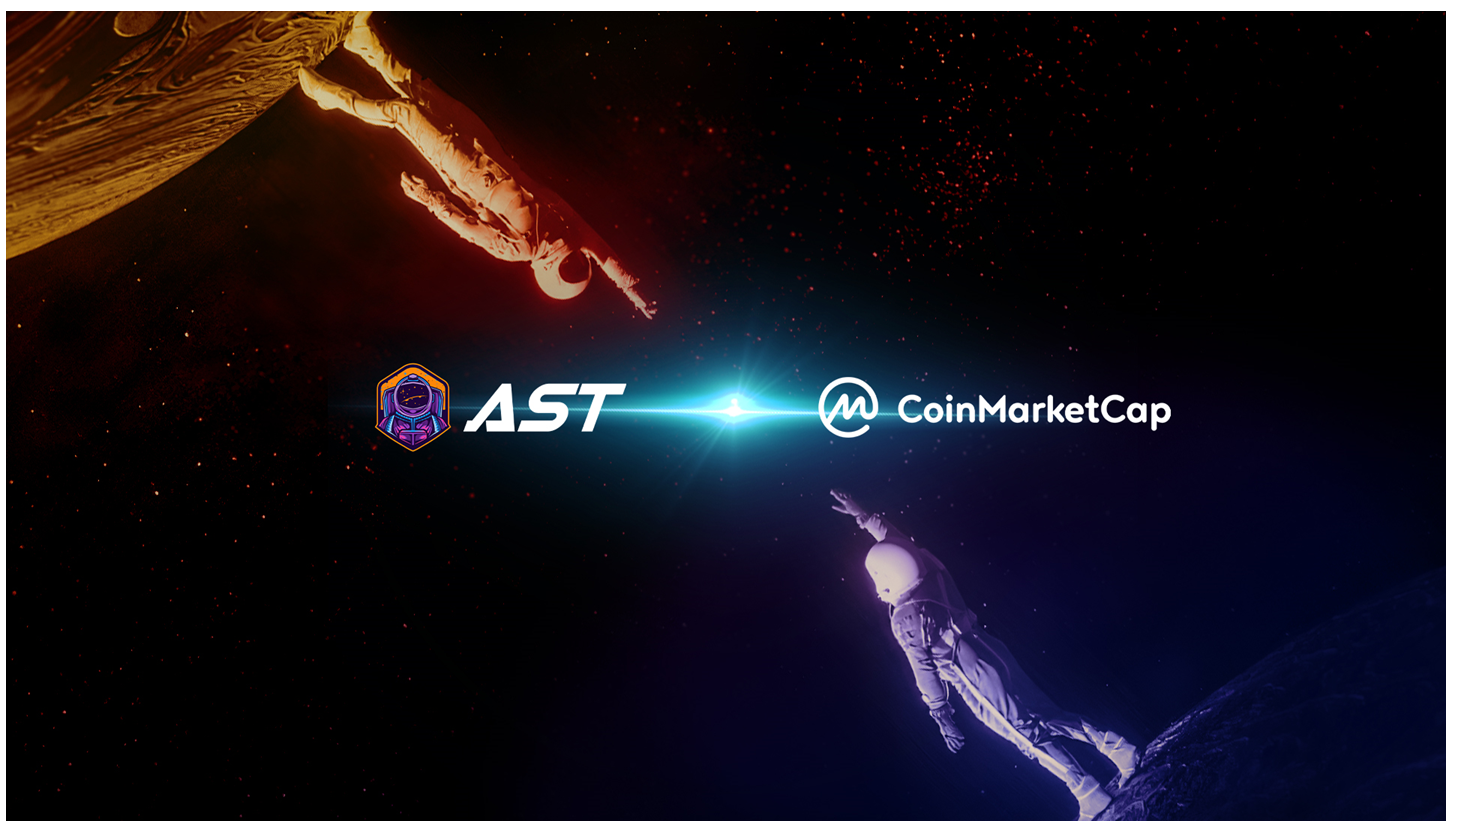 AST. Finance: When the Yield Aggregator meets GameFi - Detailed analysis of Jswap's first yield aggregator + GameFi Meta-universe project on Okex Chain